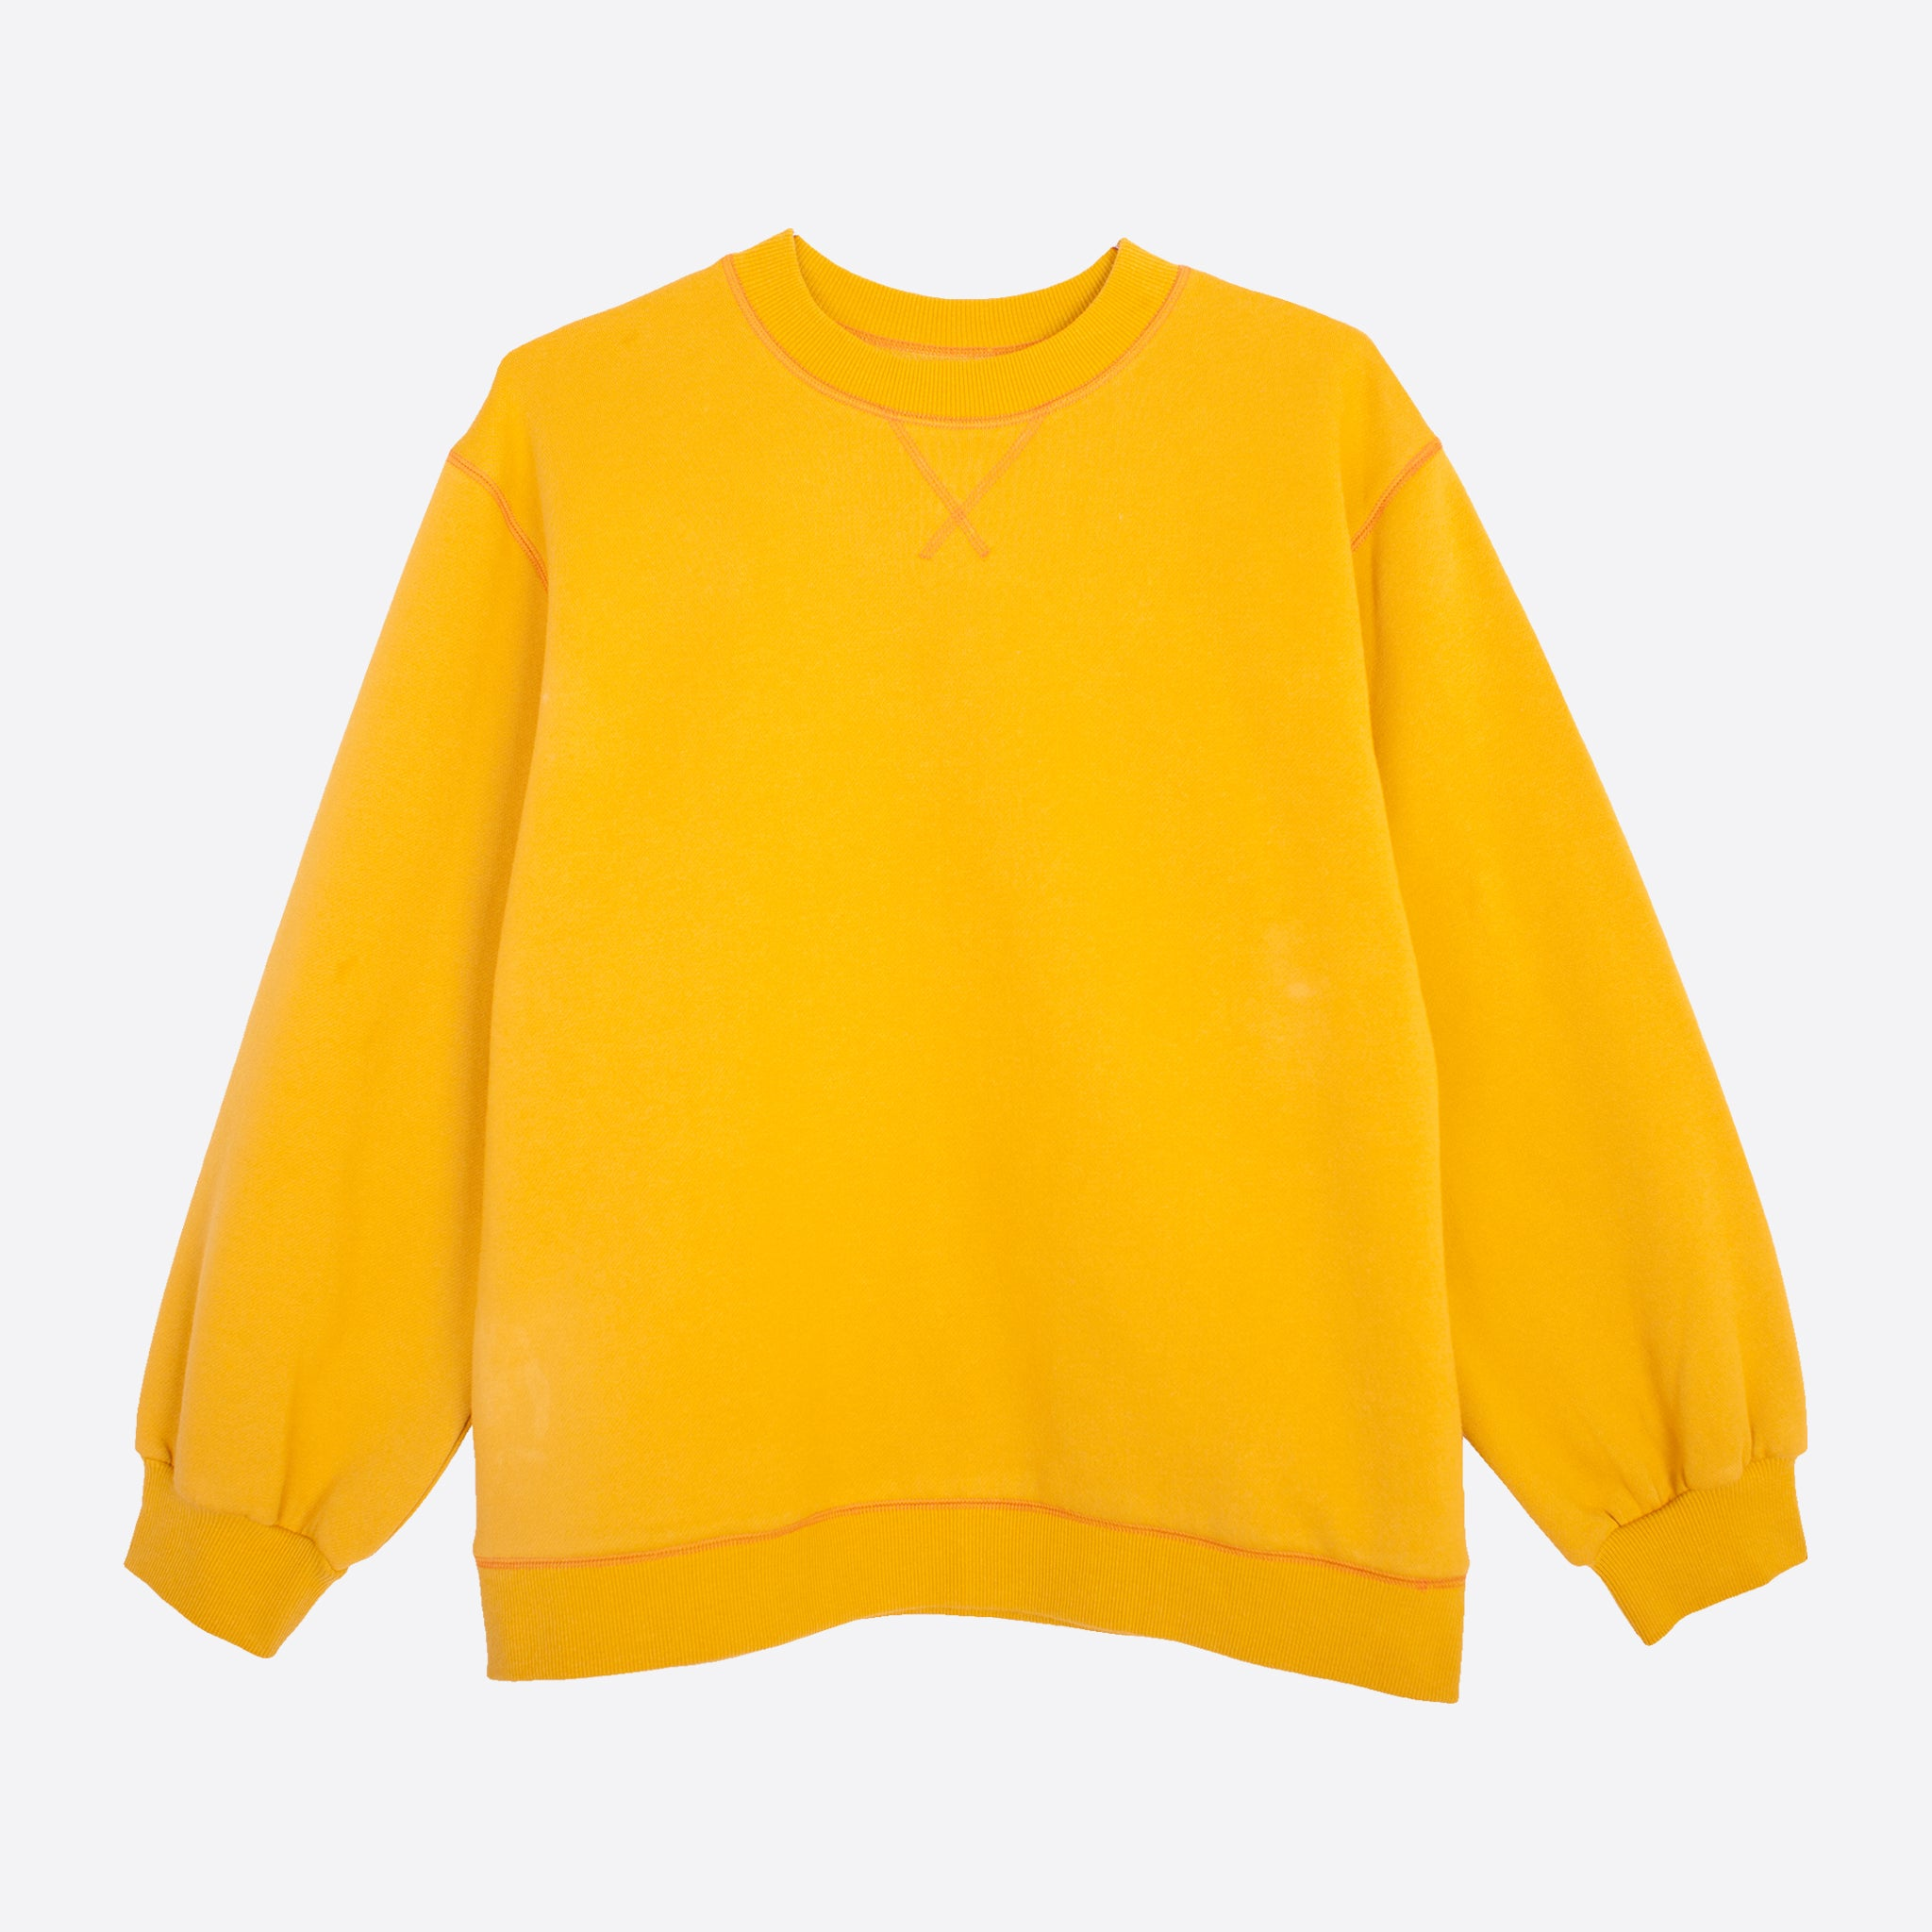 LF Markey Thierry Sweatshirt in Sunflower